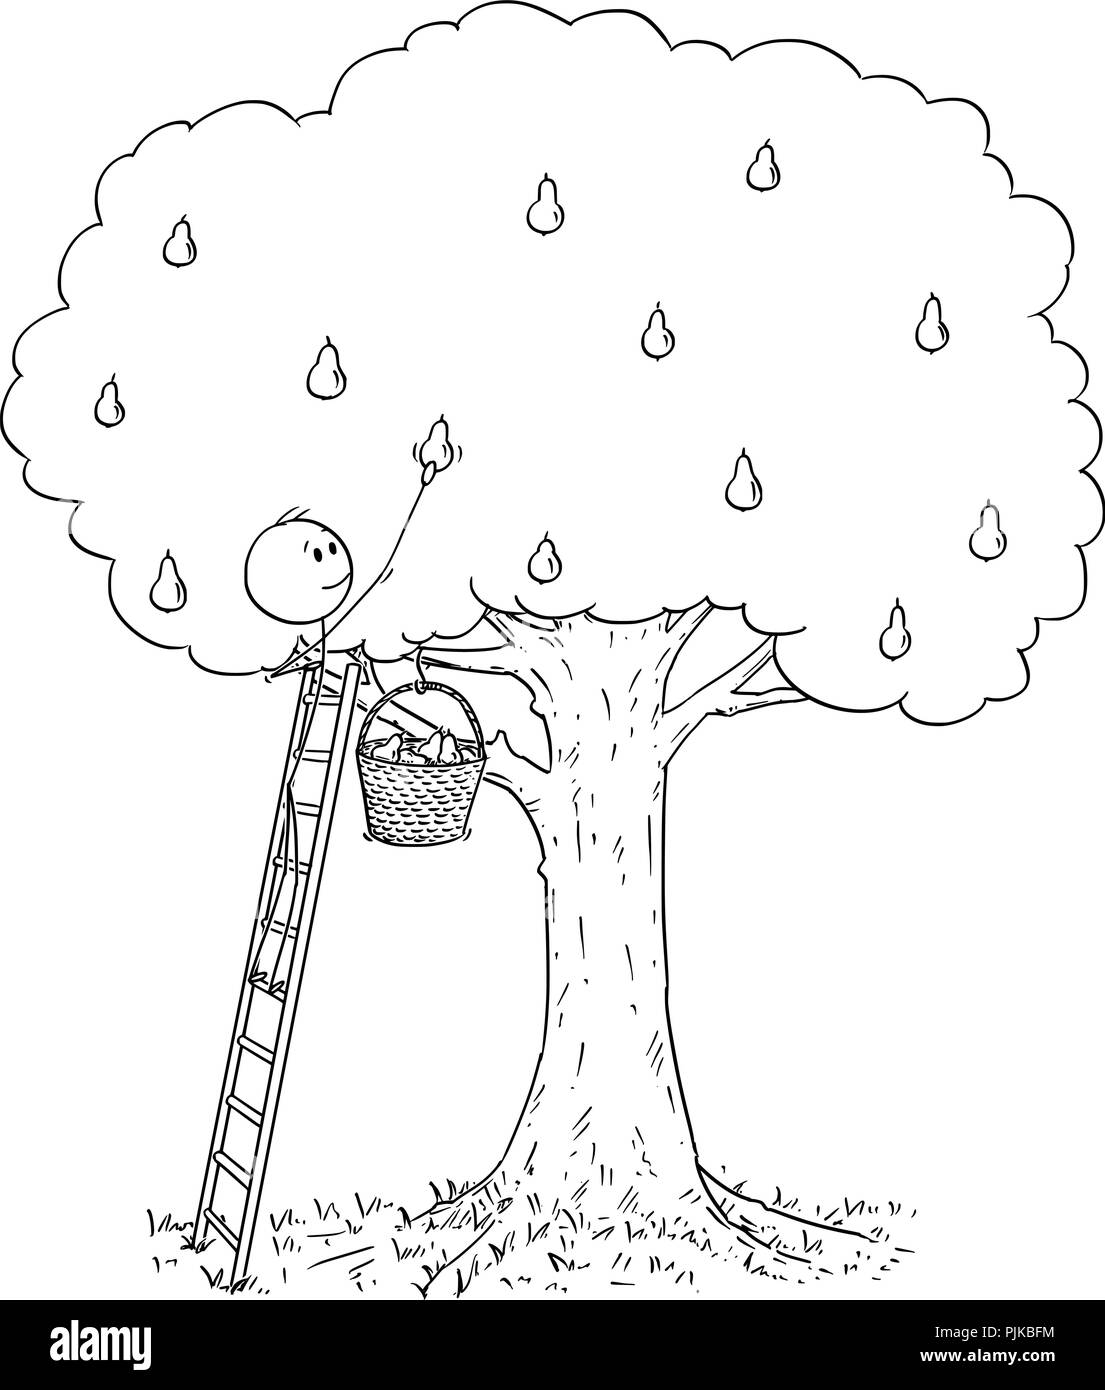 Cartoon of Man on Ladder Picking Fruit From Pear Tree - Stock Vector